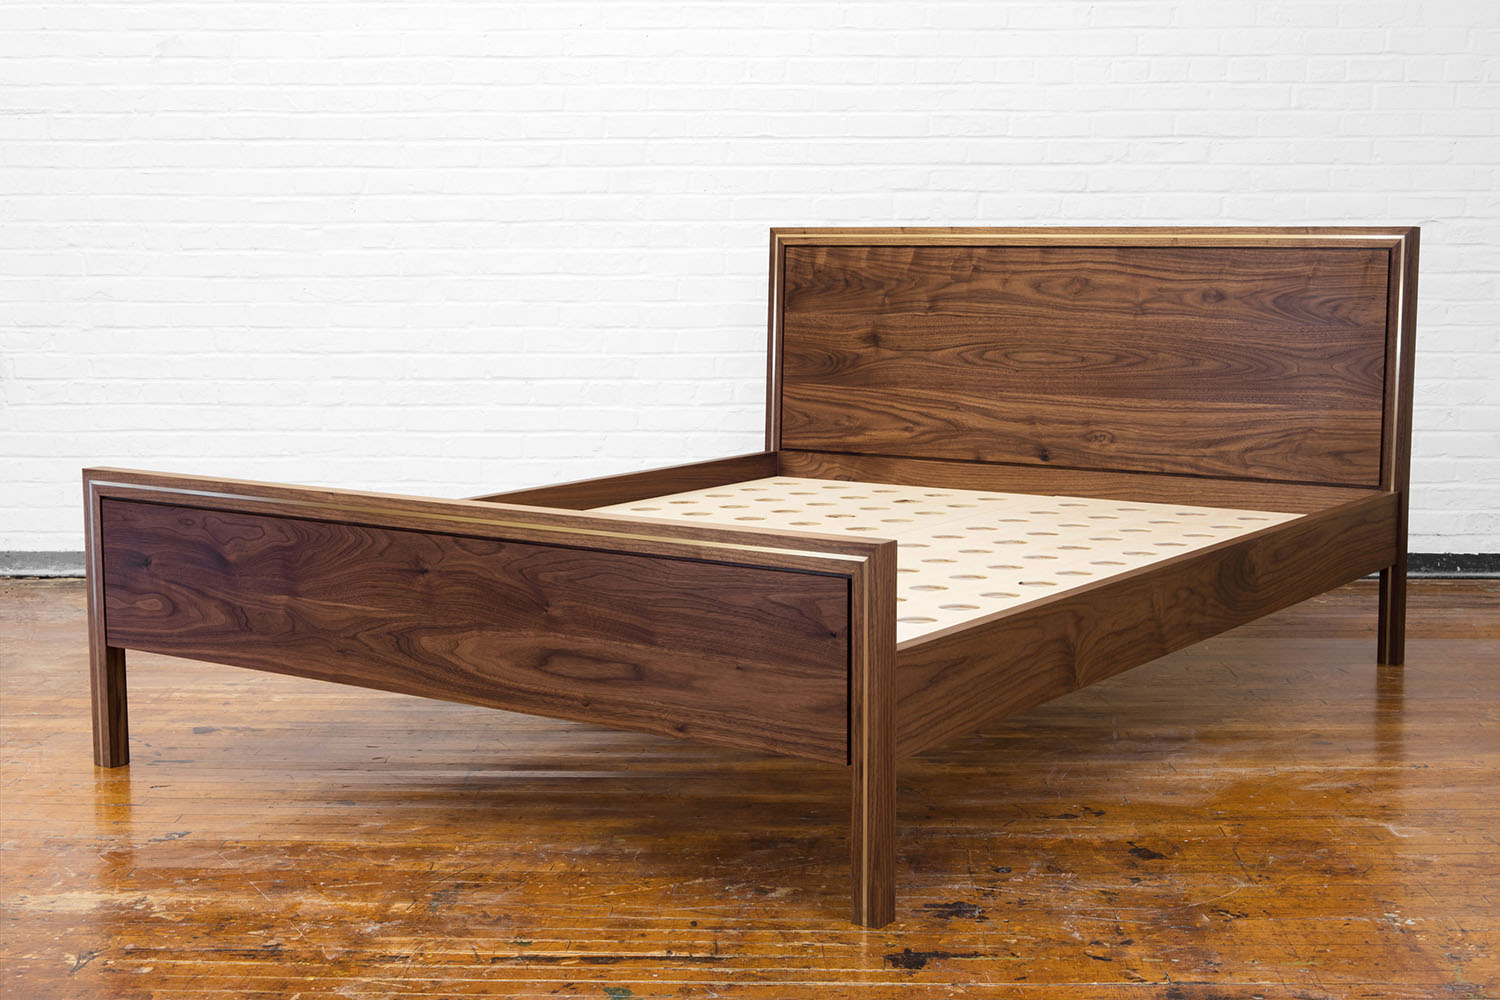 3/4 view of the Hudson bed in walnut with brass